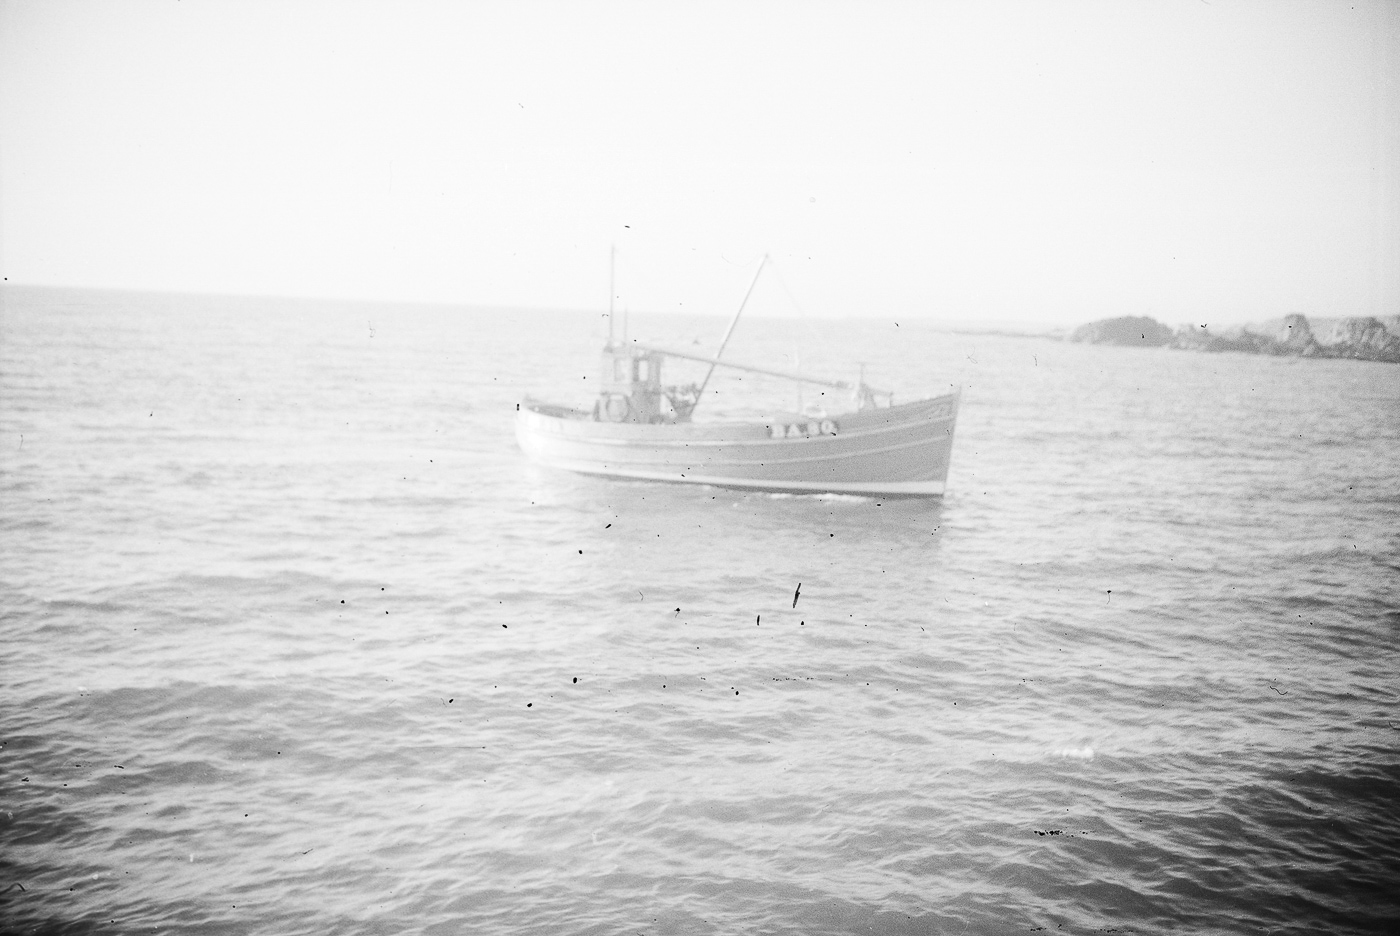 """Dual purpose ringnetter and seiner, 'Girl Anne', BA80, St Monans, 1949. She was built by J. N. Miller, St Monans, for West Coast owners. She was 39ft 9"""" long and weighed 14 tons. She is possible pictured here on her boat trials."""